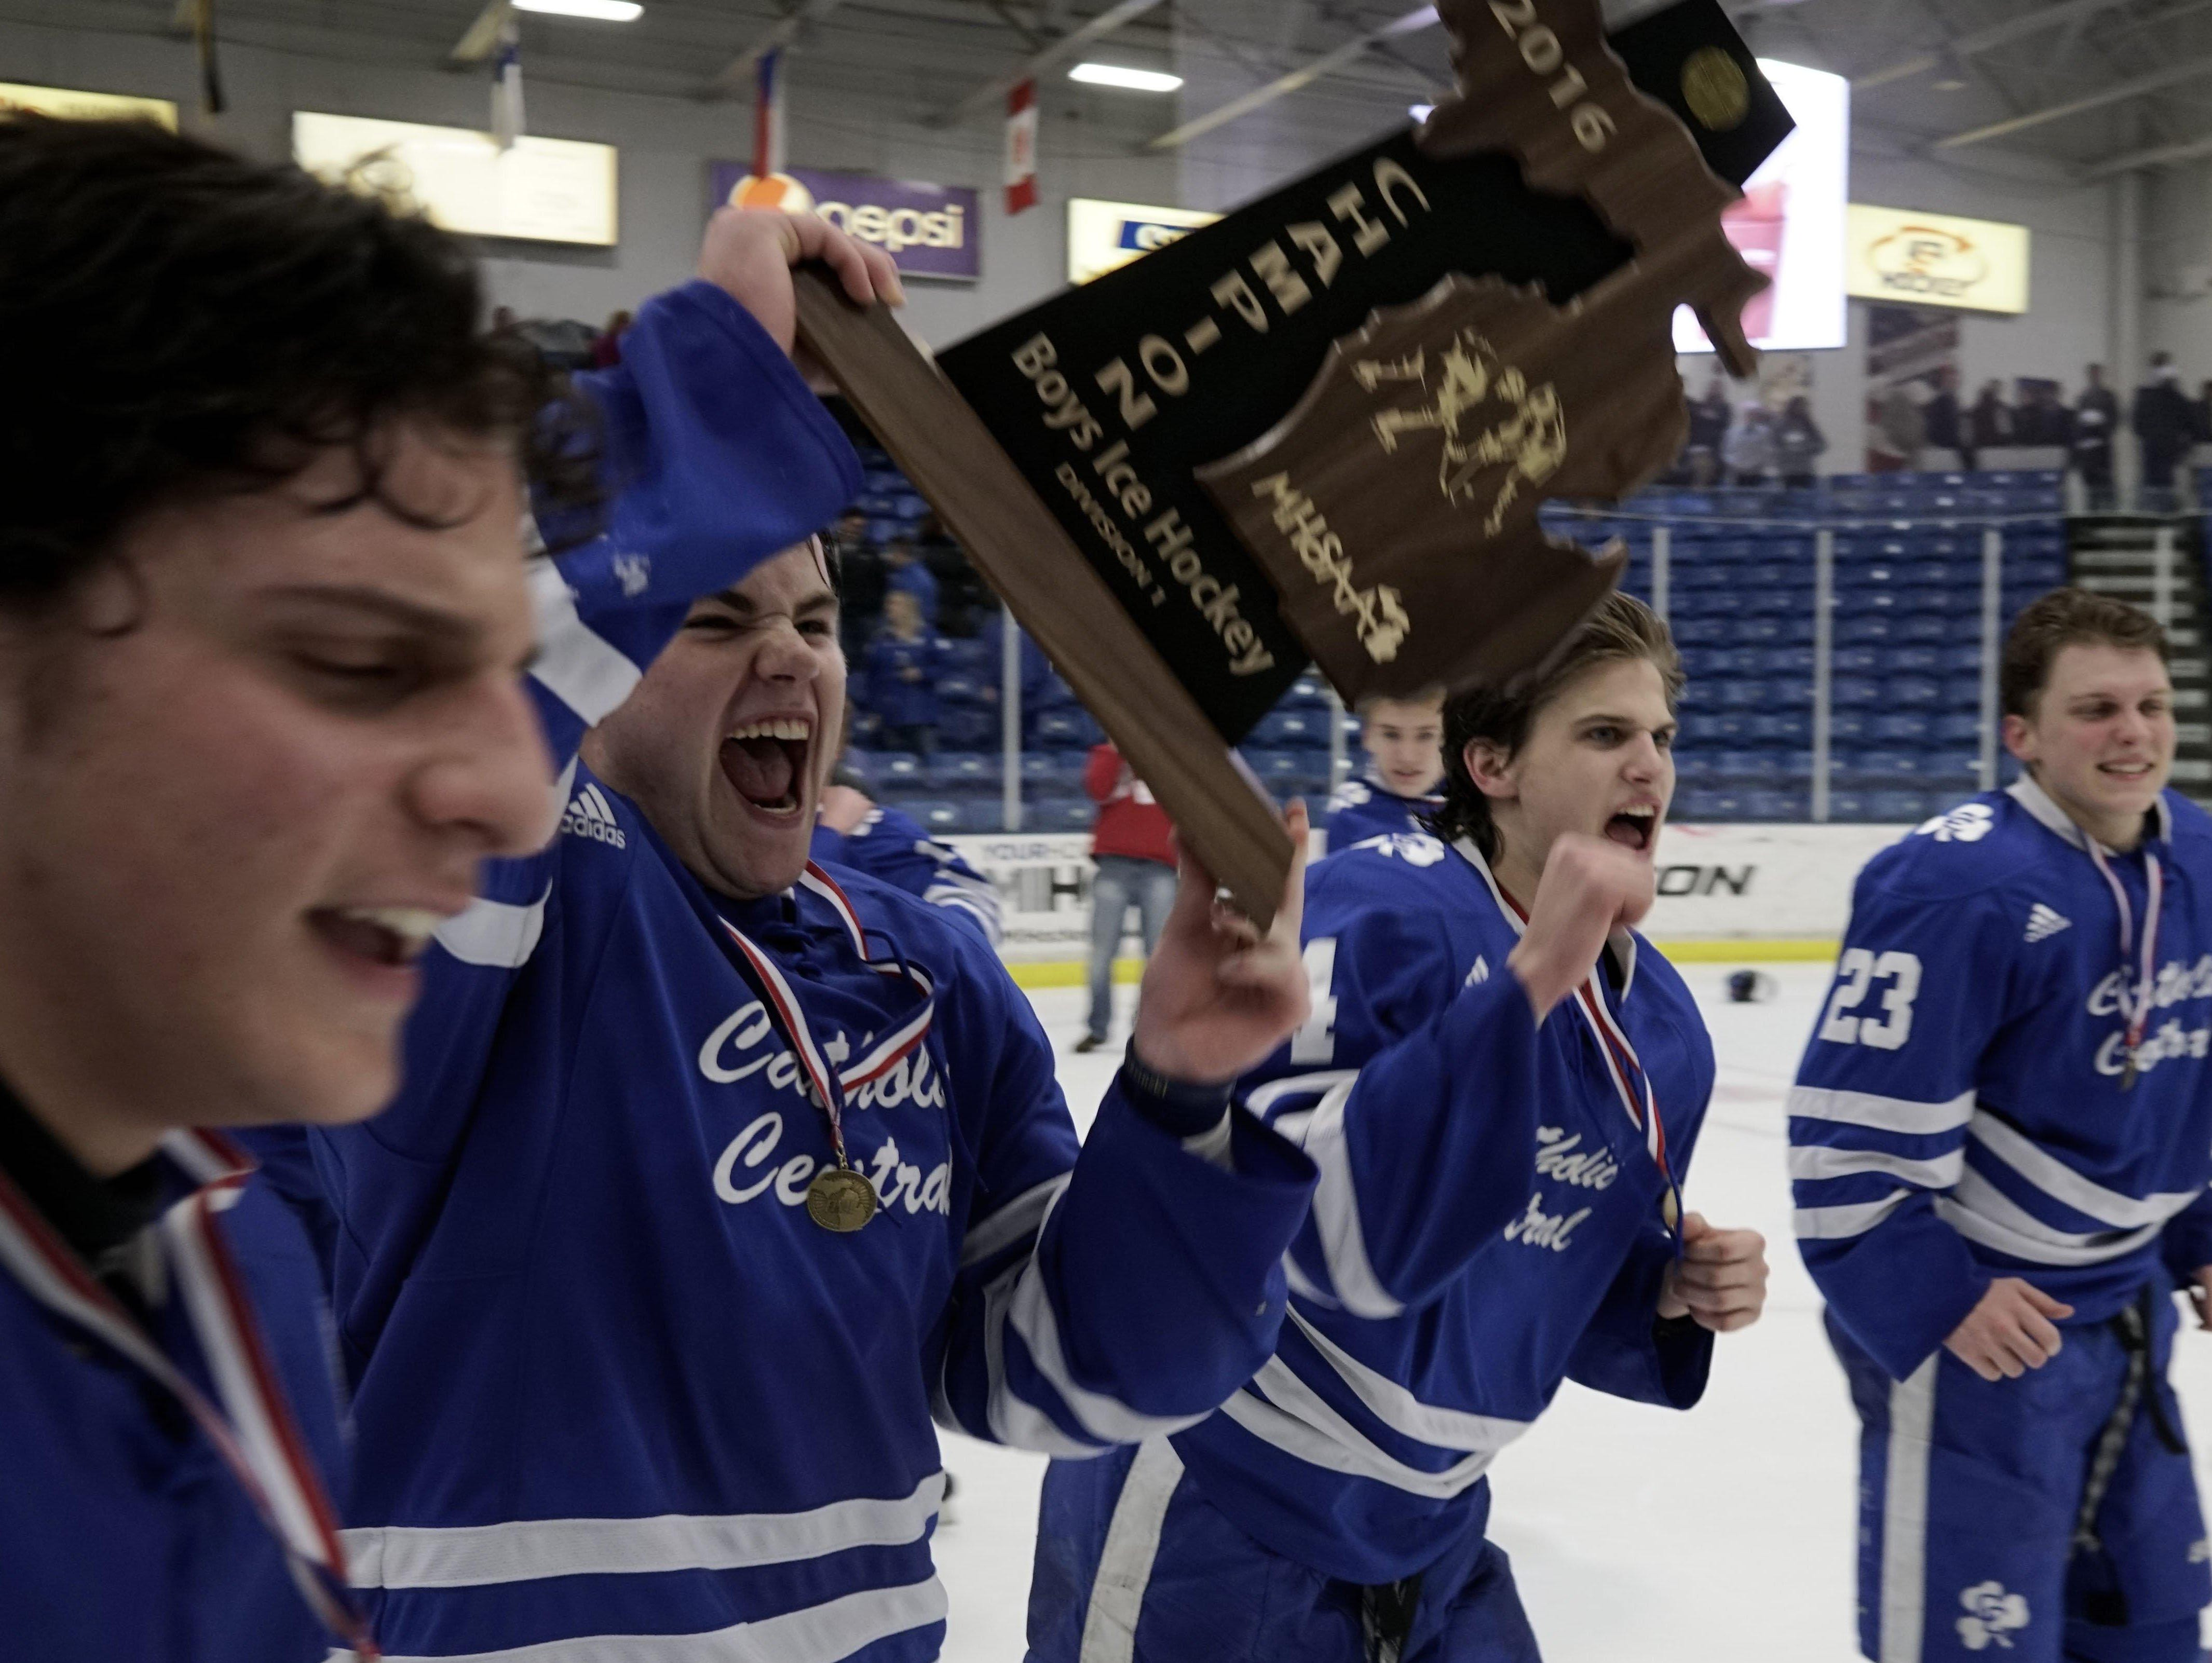 Detroit Catholic Central celebrates their win at the Division 1 Boys' Ice Hockey Final on Saturday, Mar. 12, 2016 at the USA Hockey Arena in Plymouth. Detroit Catholic Central had a shut-out win, 3-0 over Brighton. Tim Galloway/Special to DFP